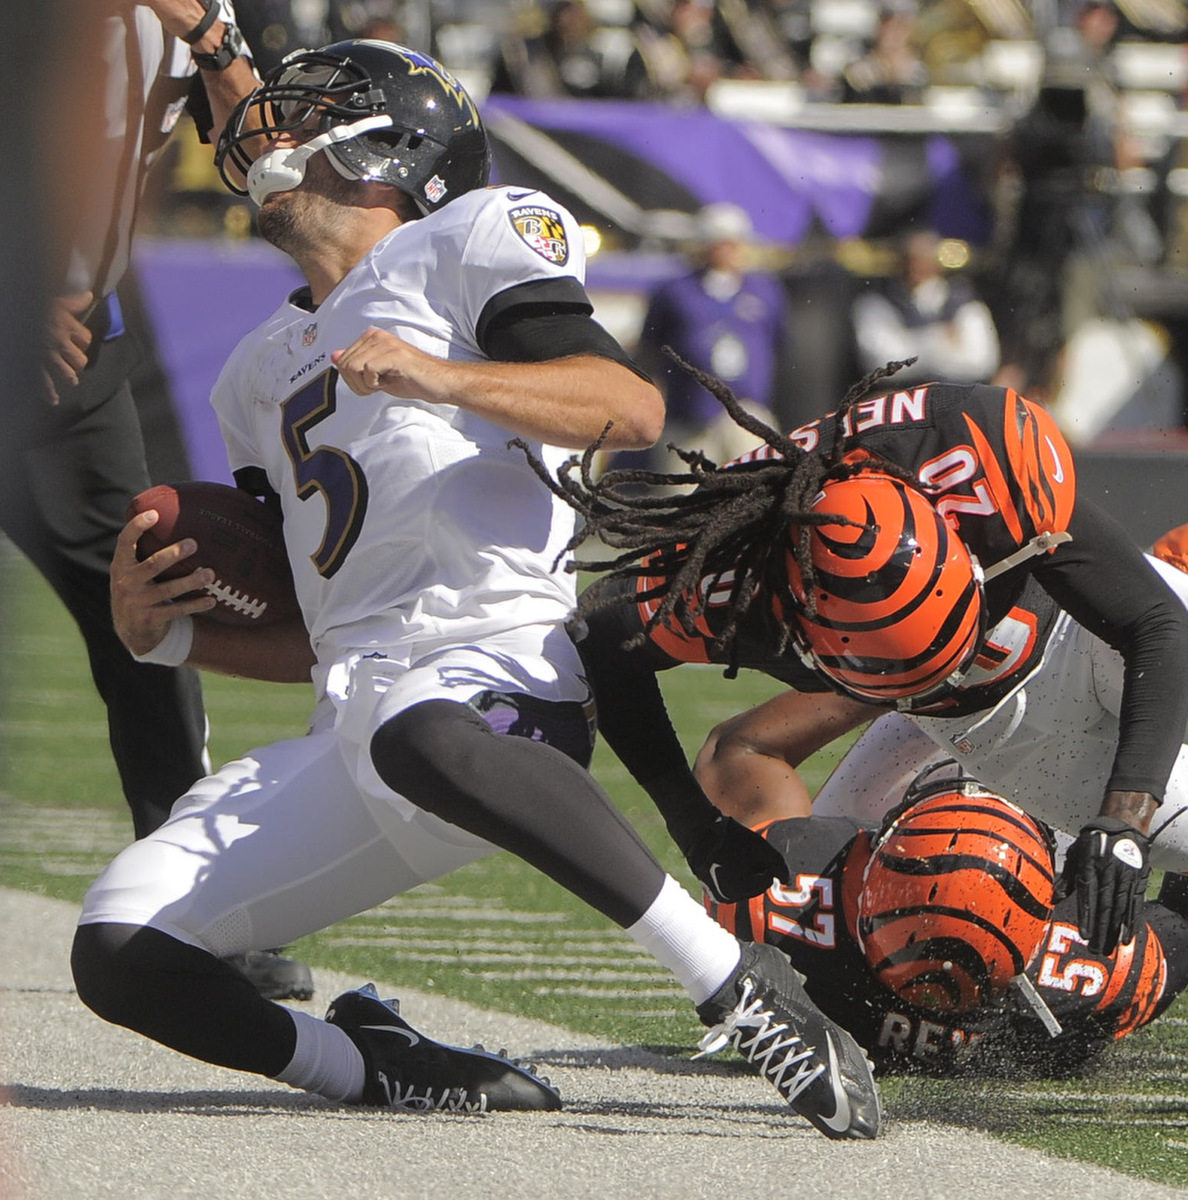 Rough Cut: Baltimore Ravens lose season opener to the Cincinnati Bengals 16-23